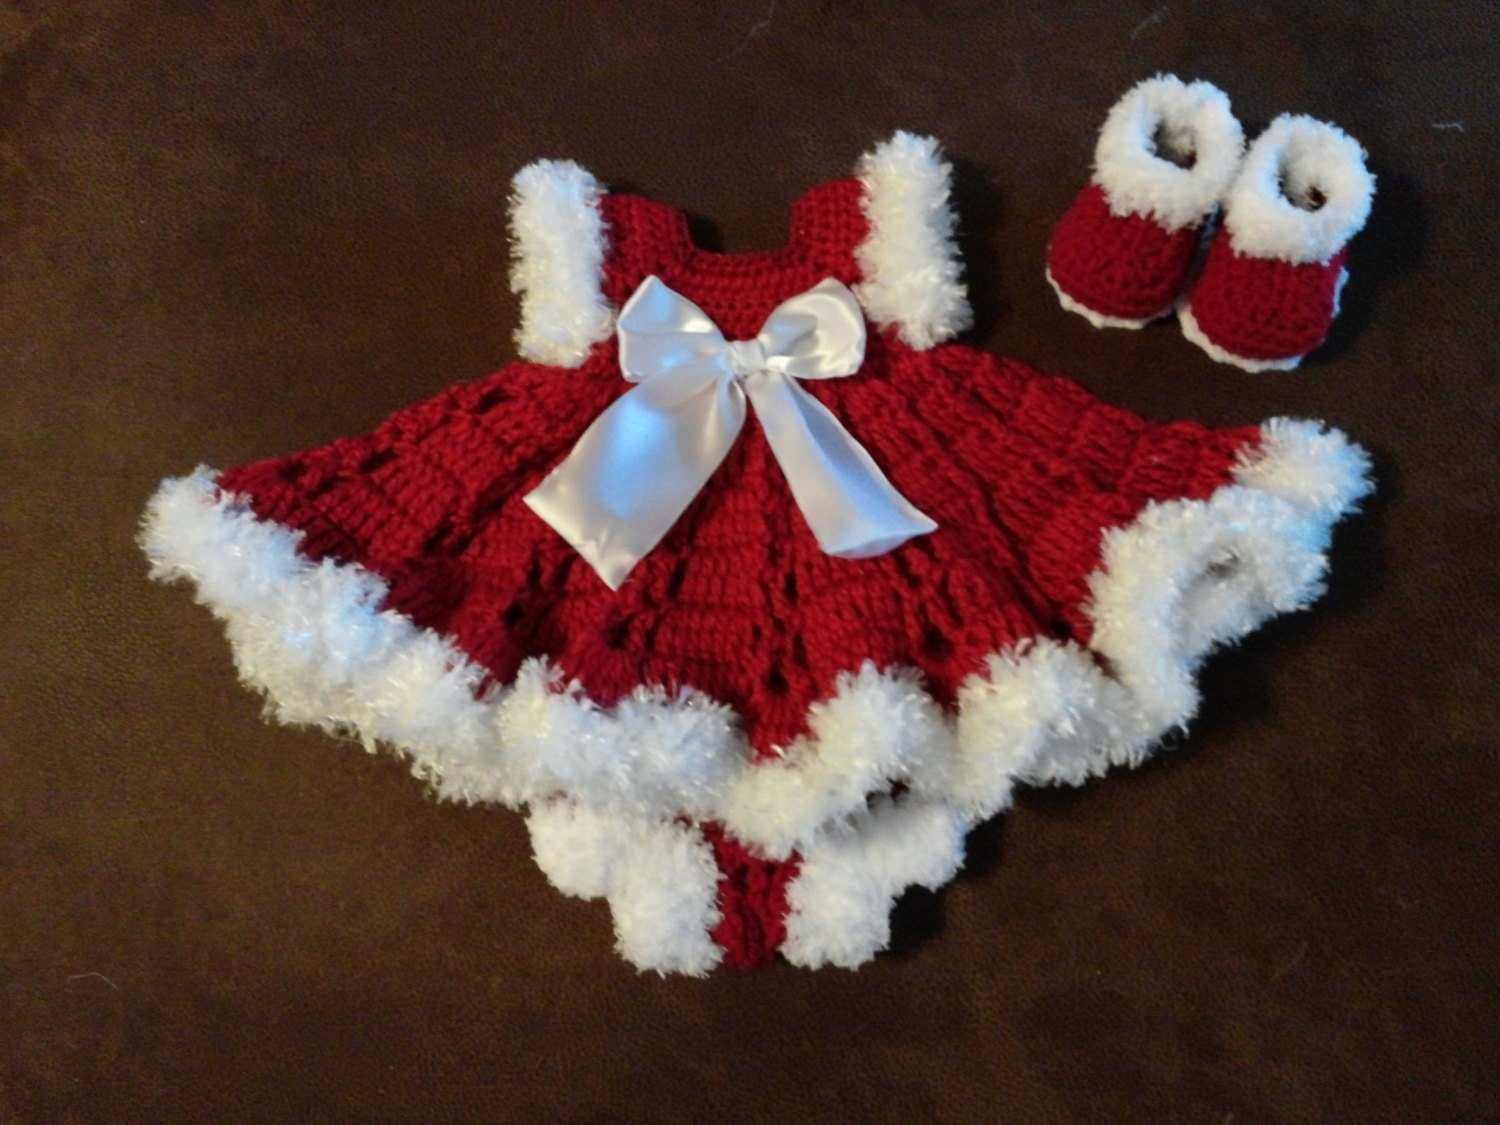 Crochet Christmas baby dress outfit autiful on baby